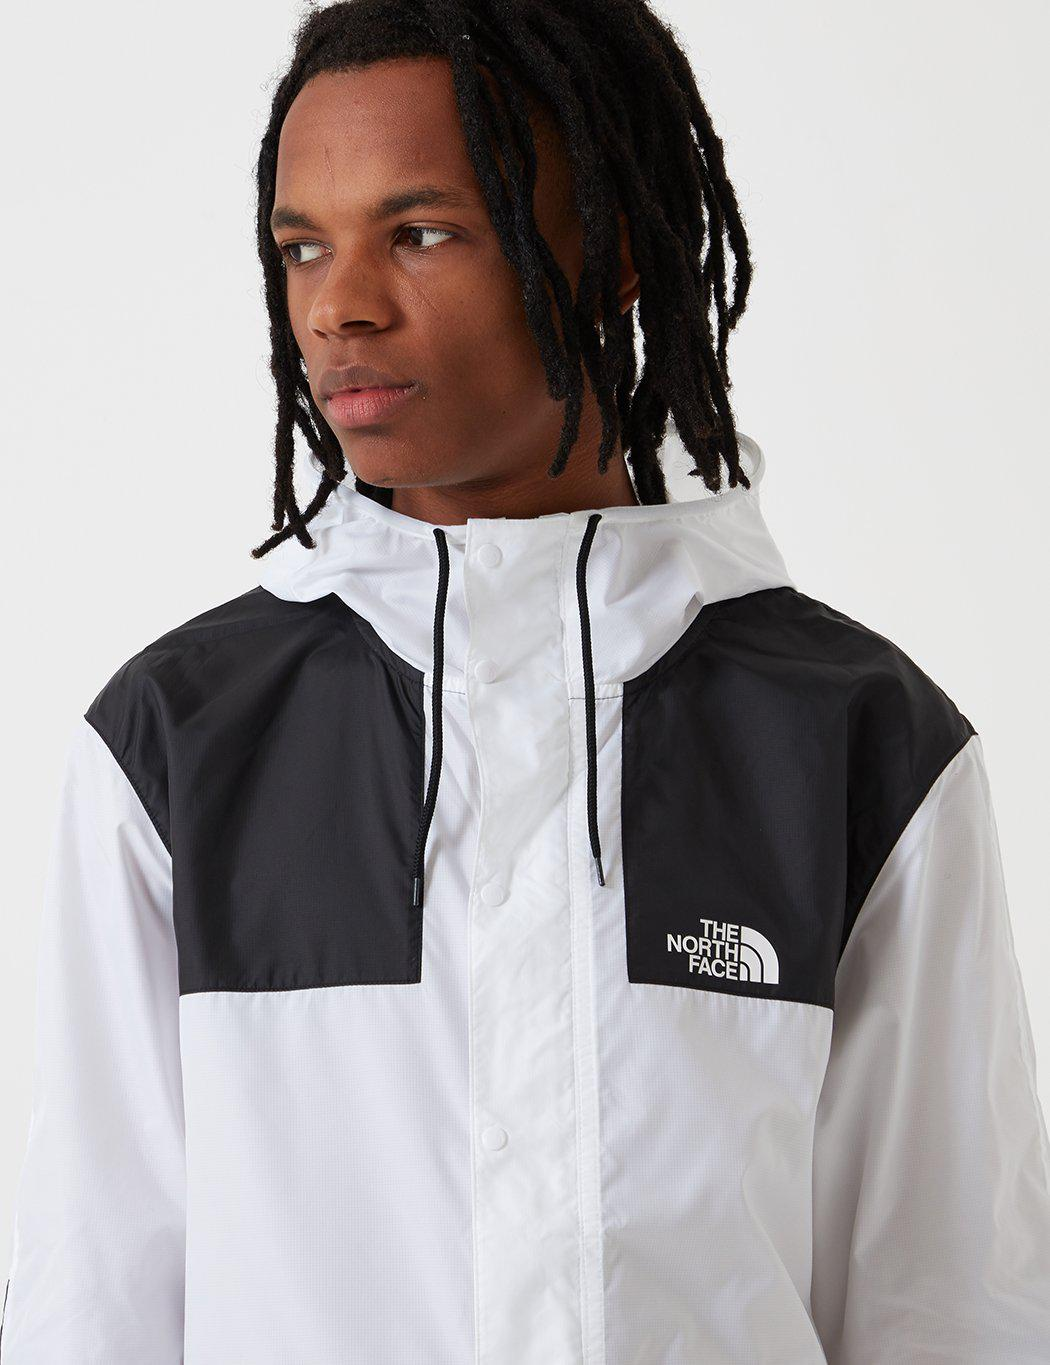 Lyst - The North Face 1985 Sea Cel Mountain Jacket in White for Men 48331433e001